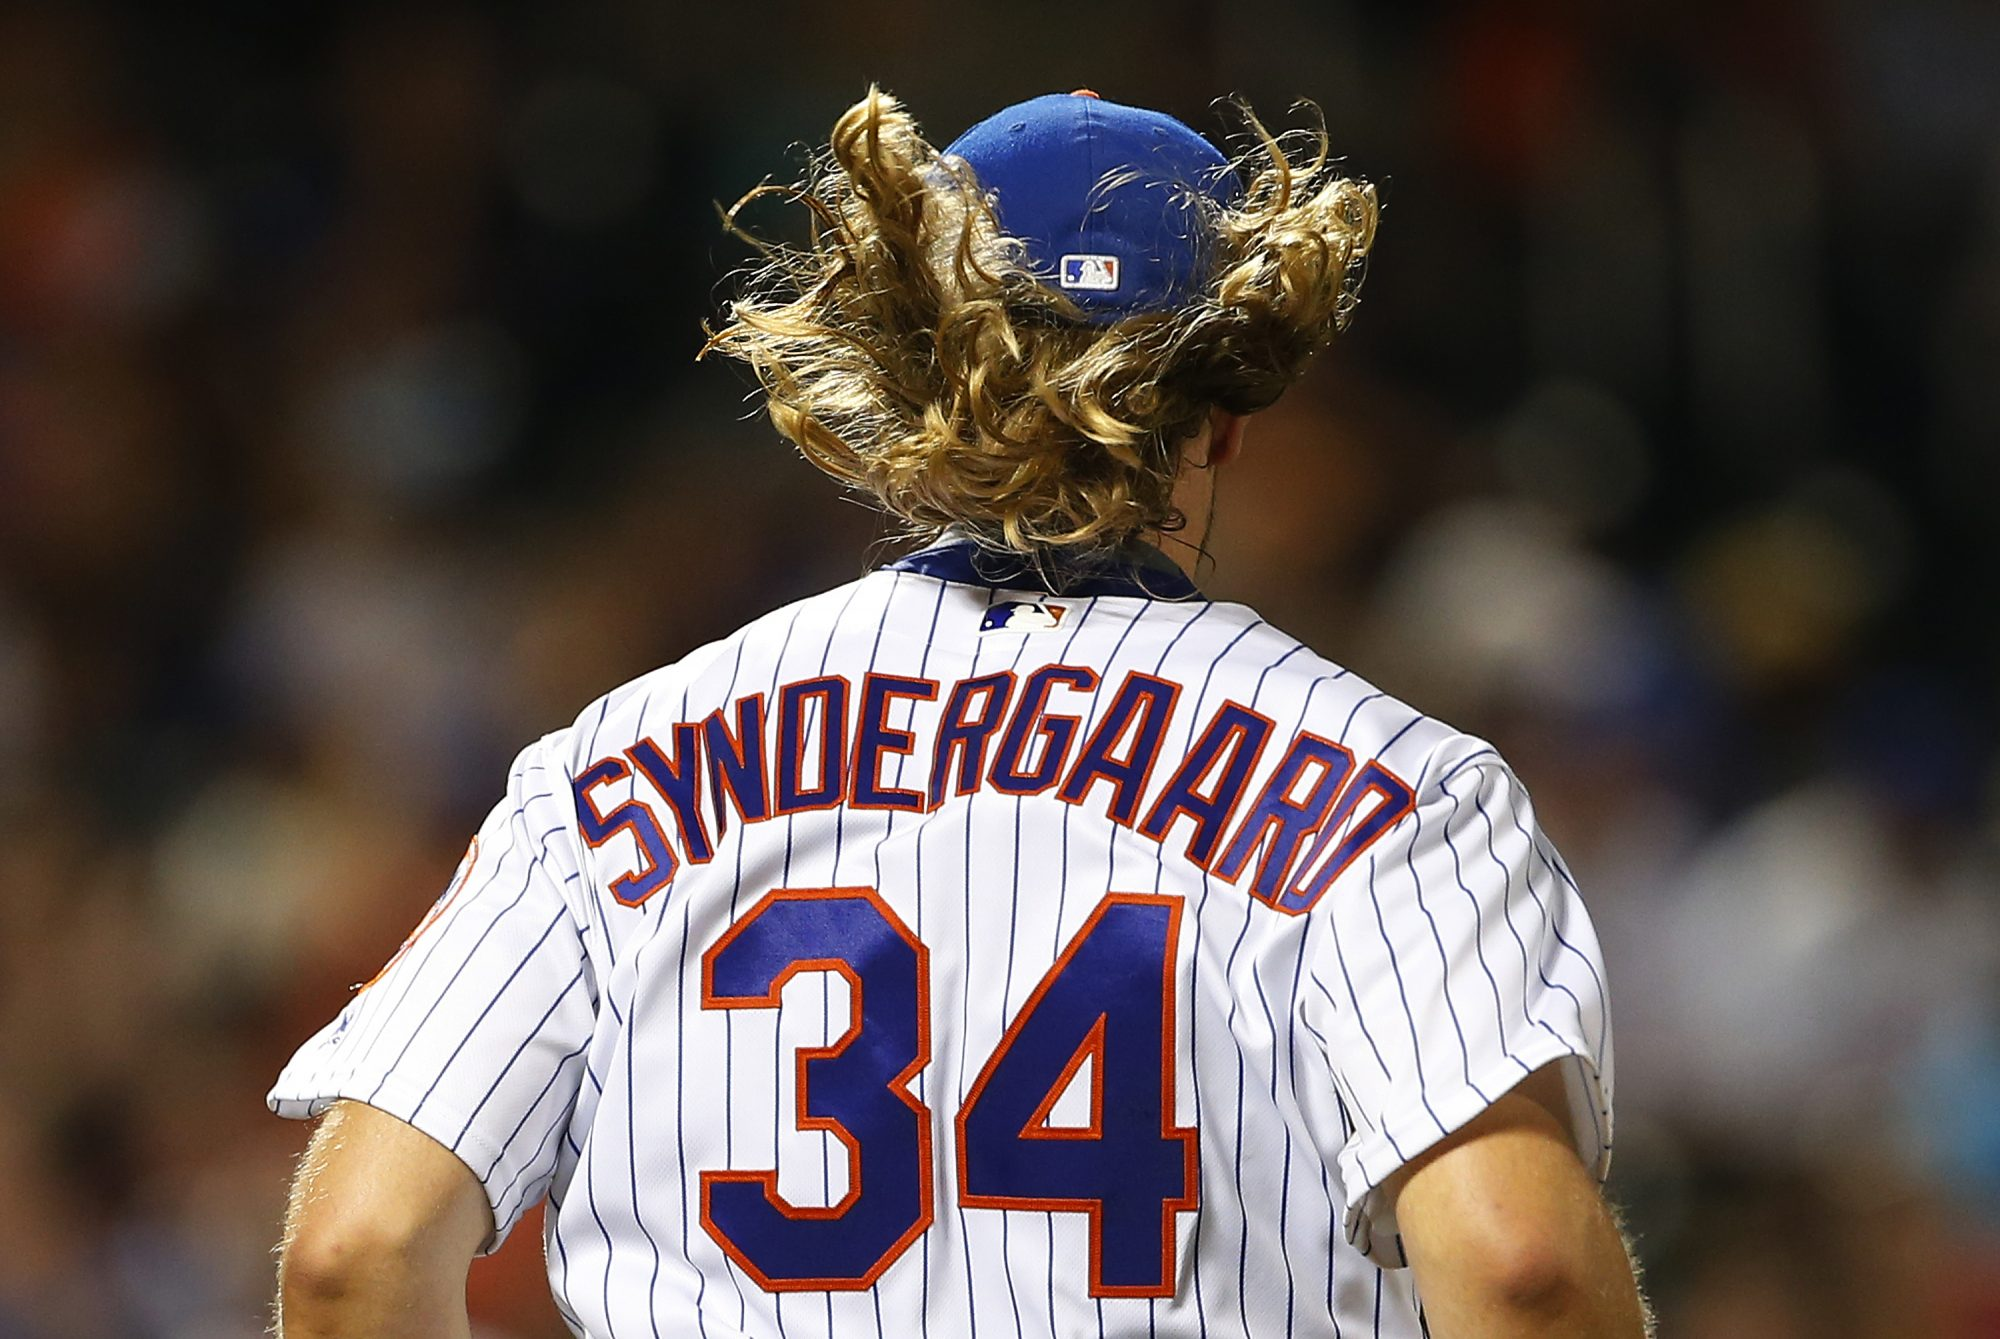 The Enticing Reasons New York Mets Fans Should Stay Tuned to the 2017 Season 3